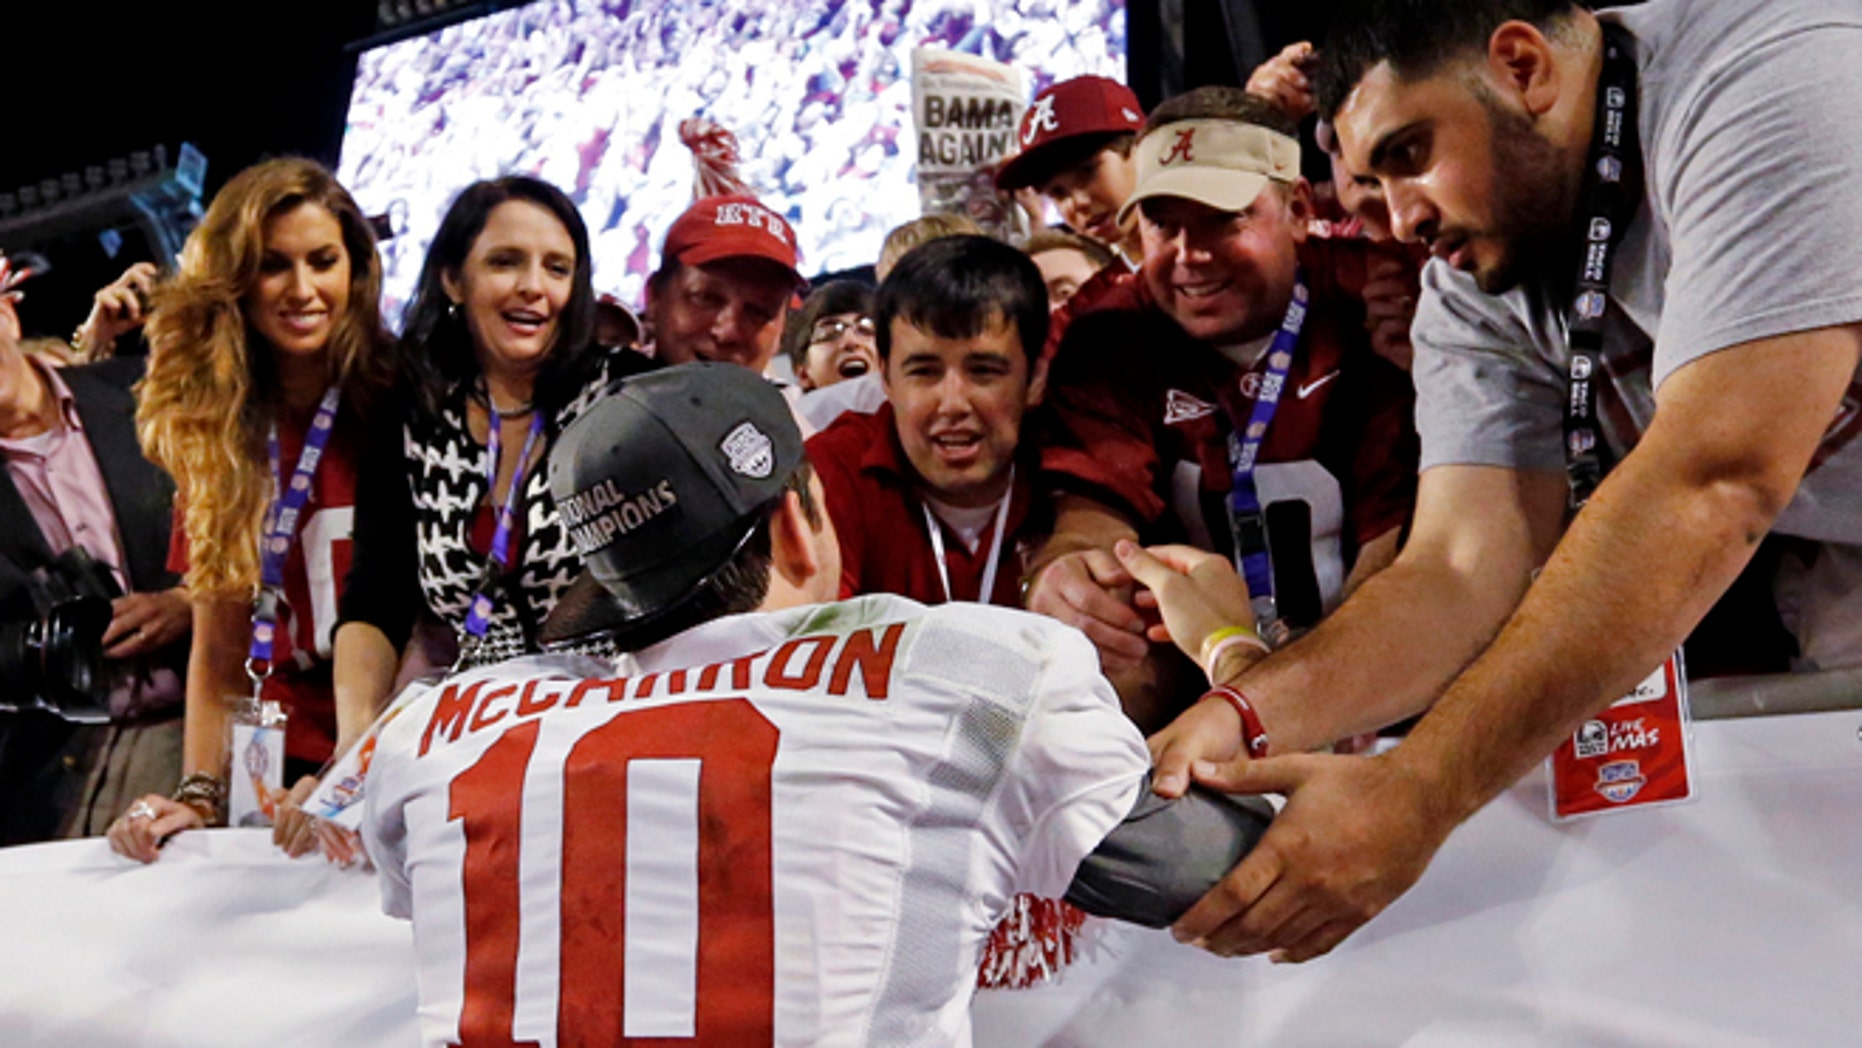 Jan 7: Alabama quarterback AJ McCarron elebrates after winning the BCS National Championship. Alabama is in the SEC.